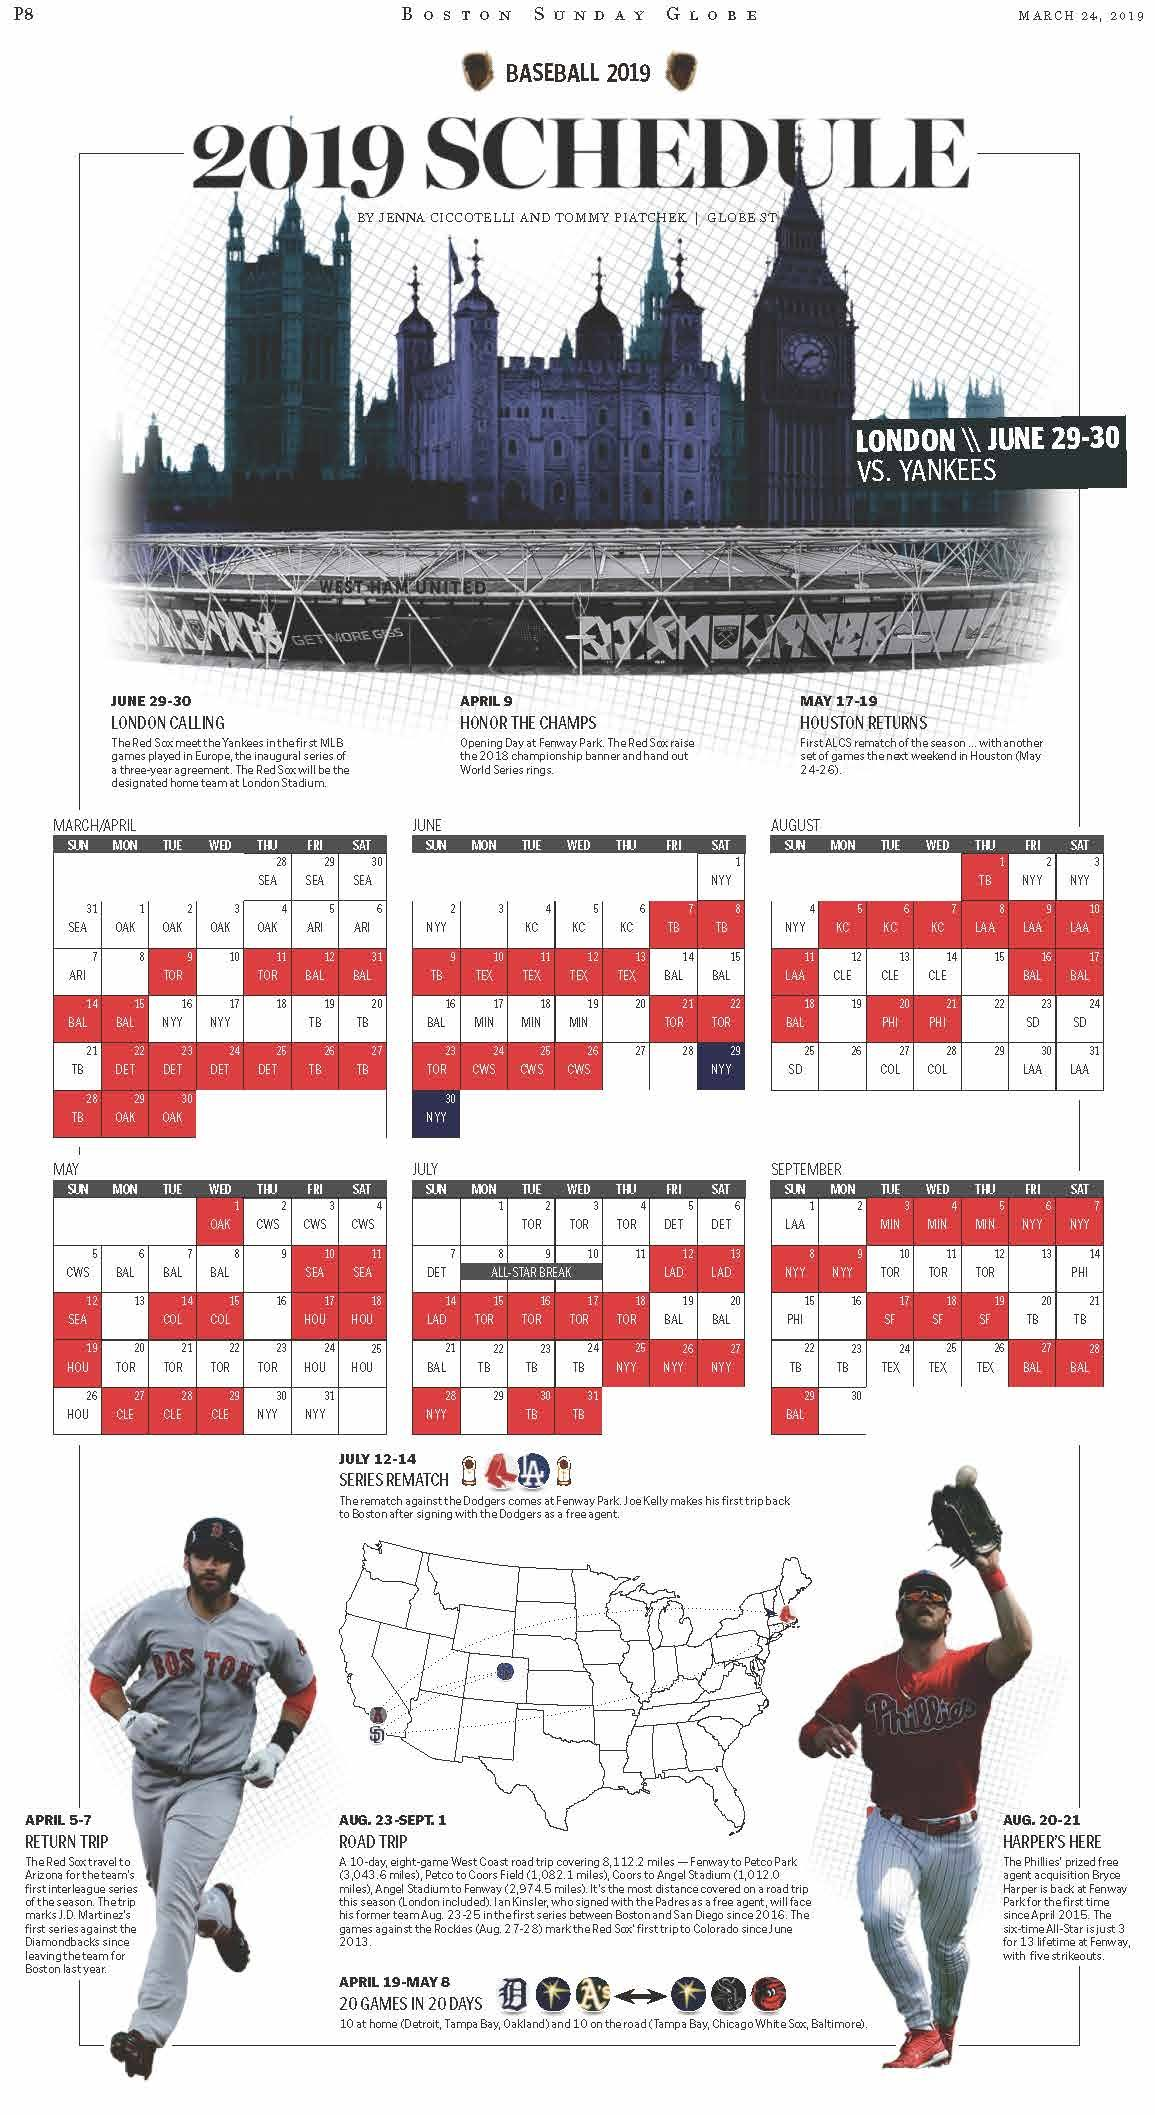 Red Sox 2019 Schedule Red sox, Schedule, Road trip